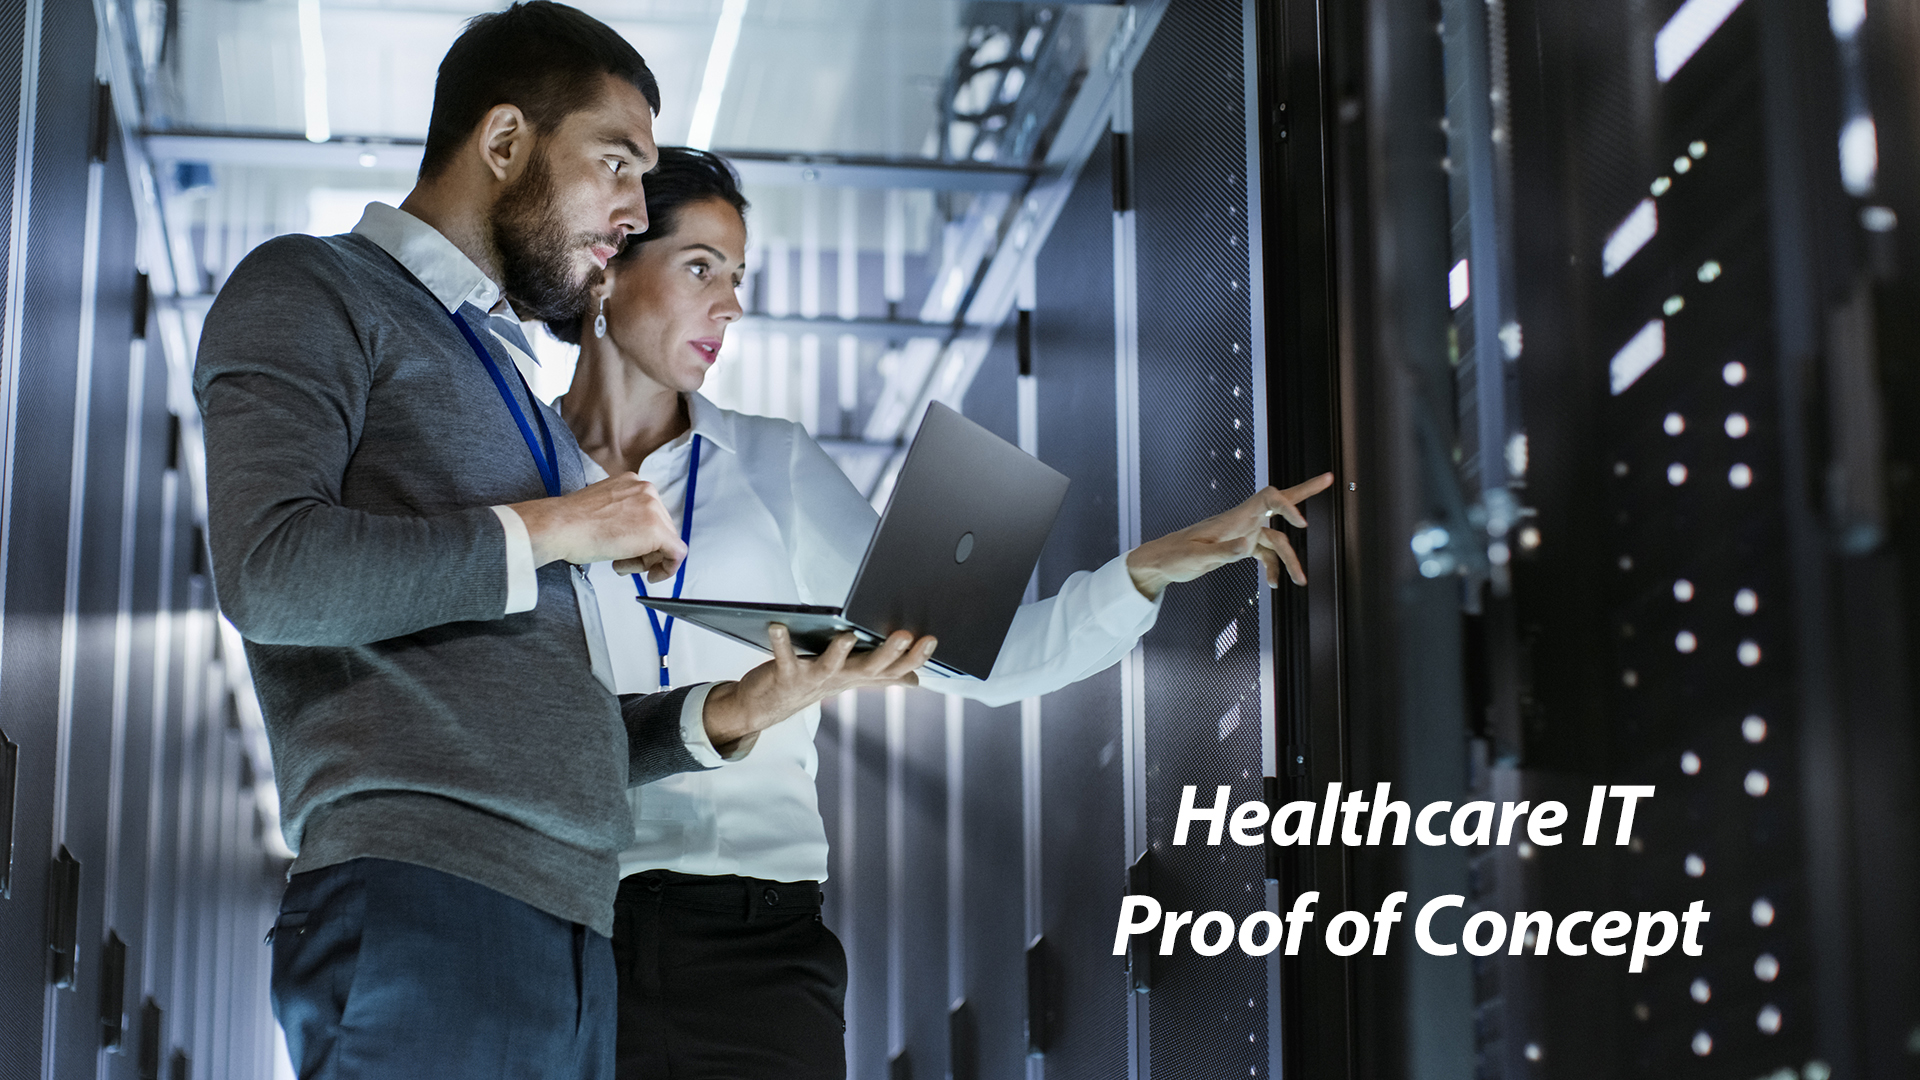 Healthcare IT professional in Proof of Concept photograph